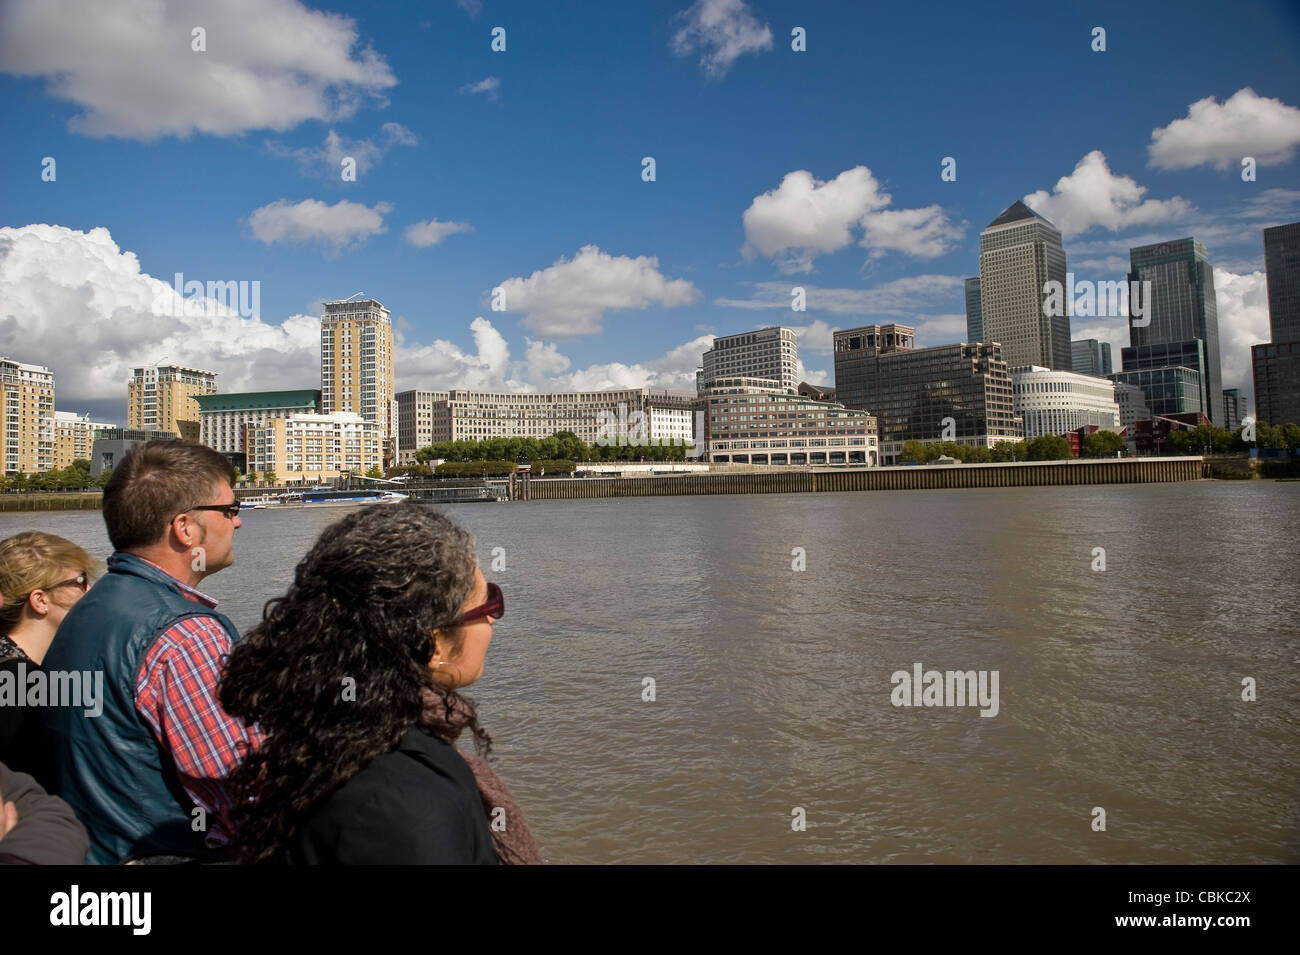 Sightseers on a Thames River boat guided tour viewing Docklands Canary Wharf, London, UK - Stock Image